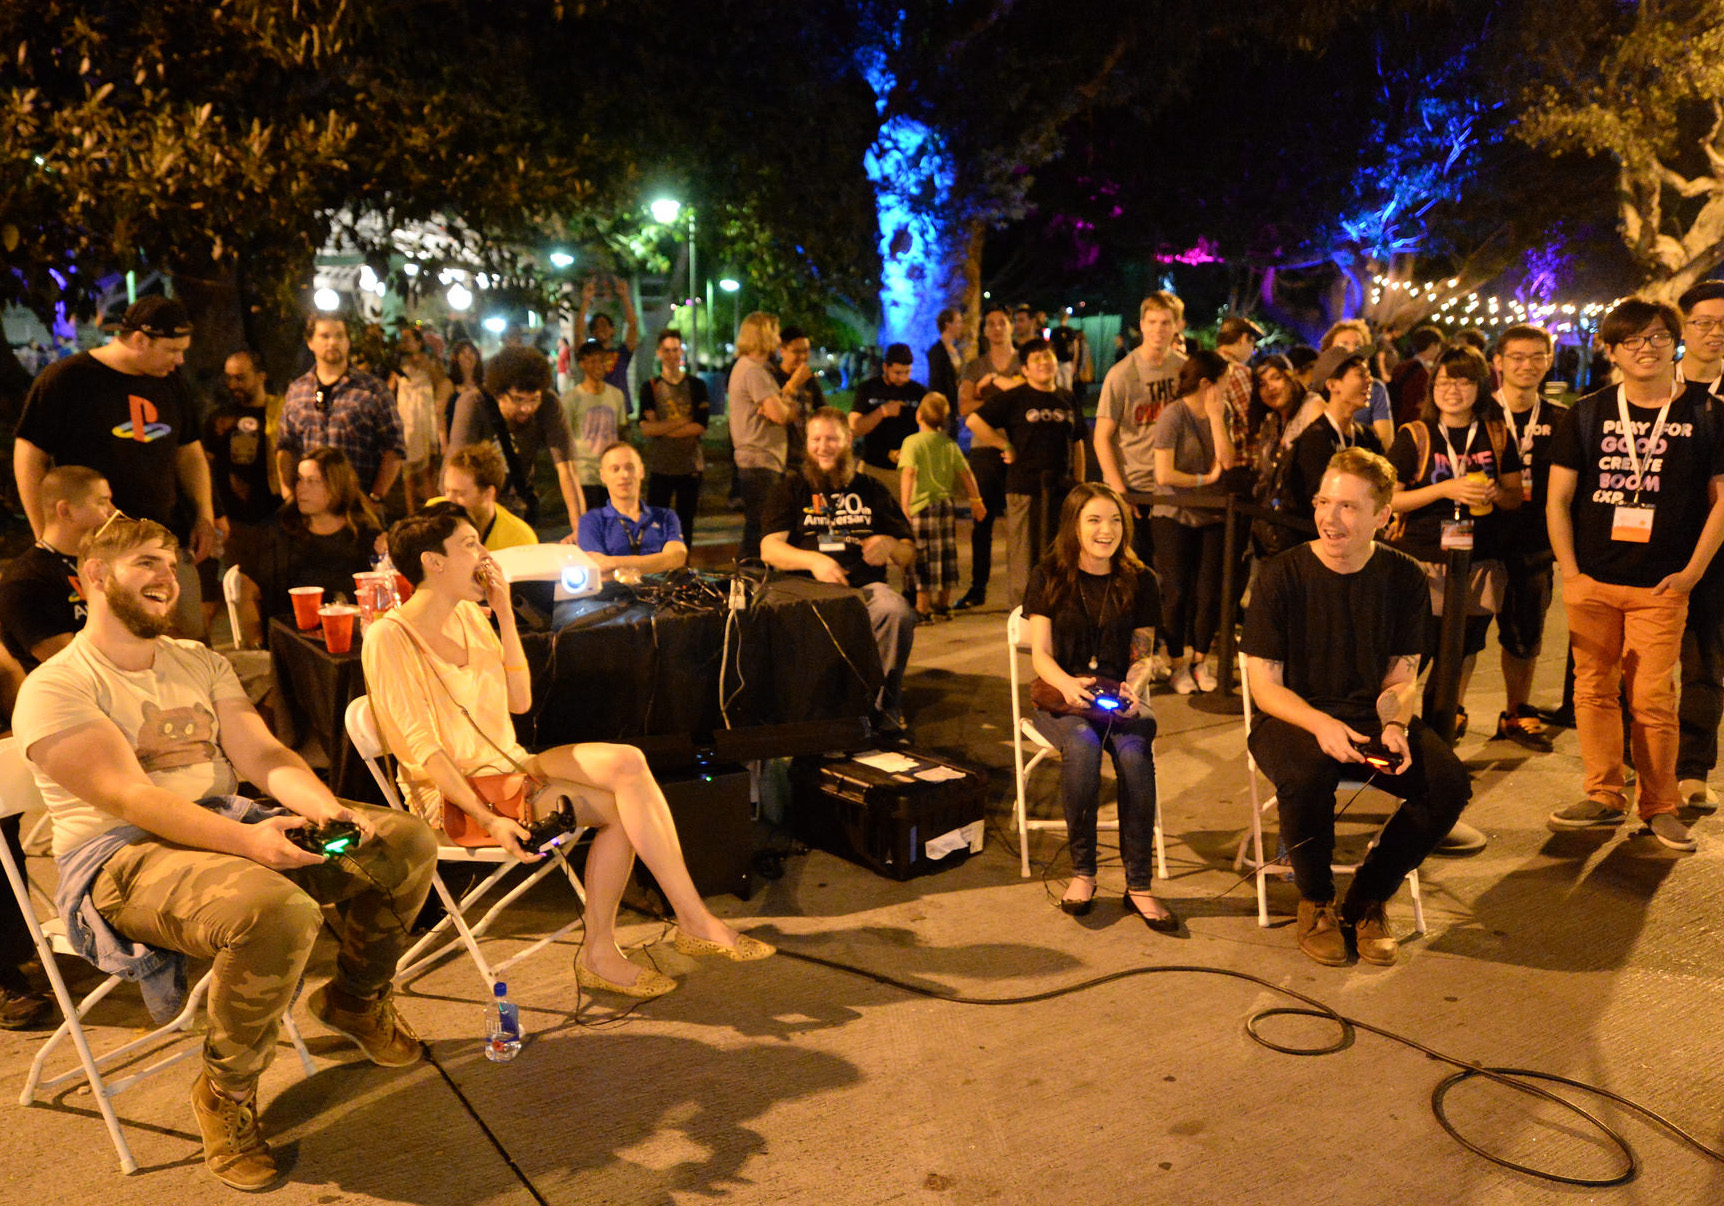 Attendees excitedly watch a competitive game at Night Games